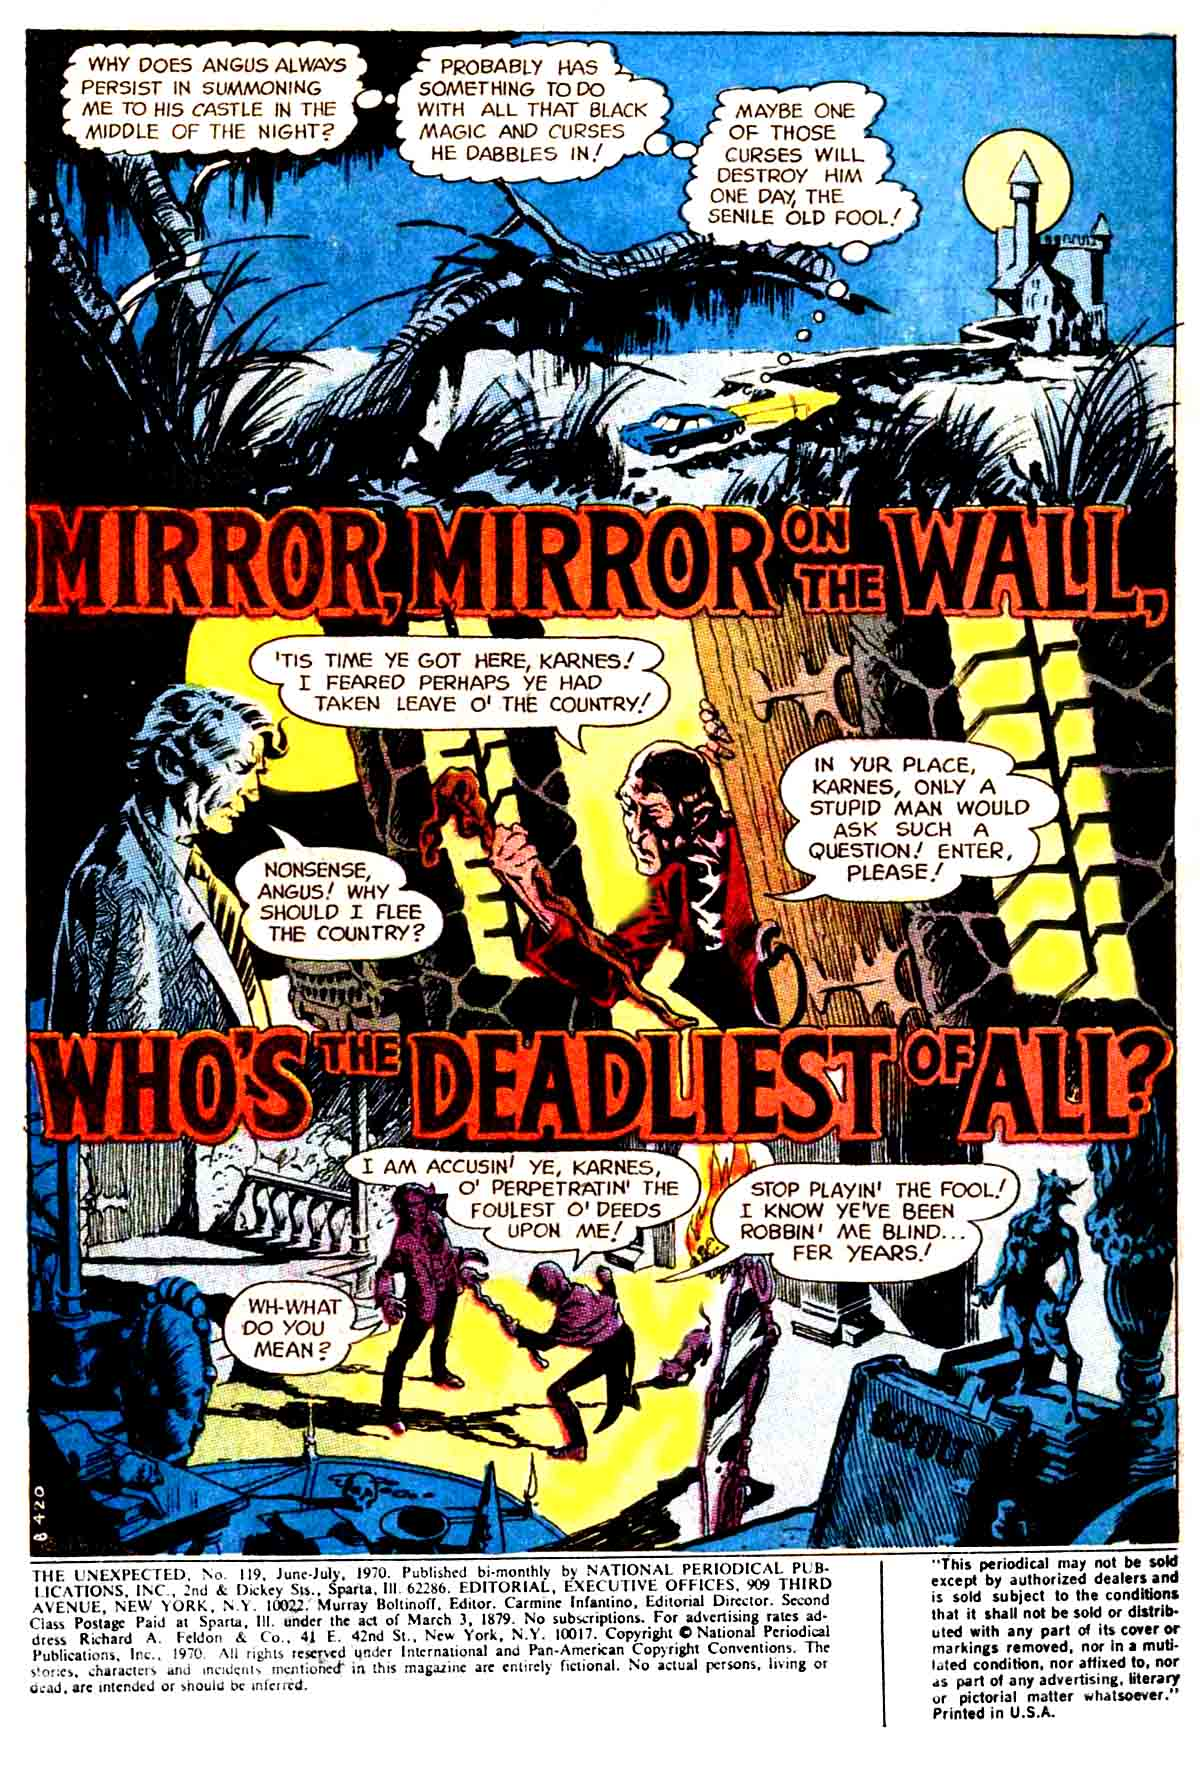 Mirror, Mirror on the Wall, Who's the Deadliest of All.